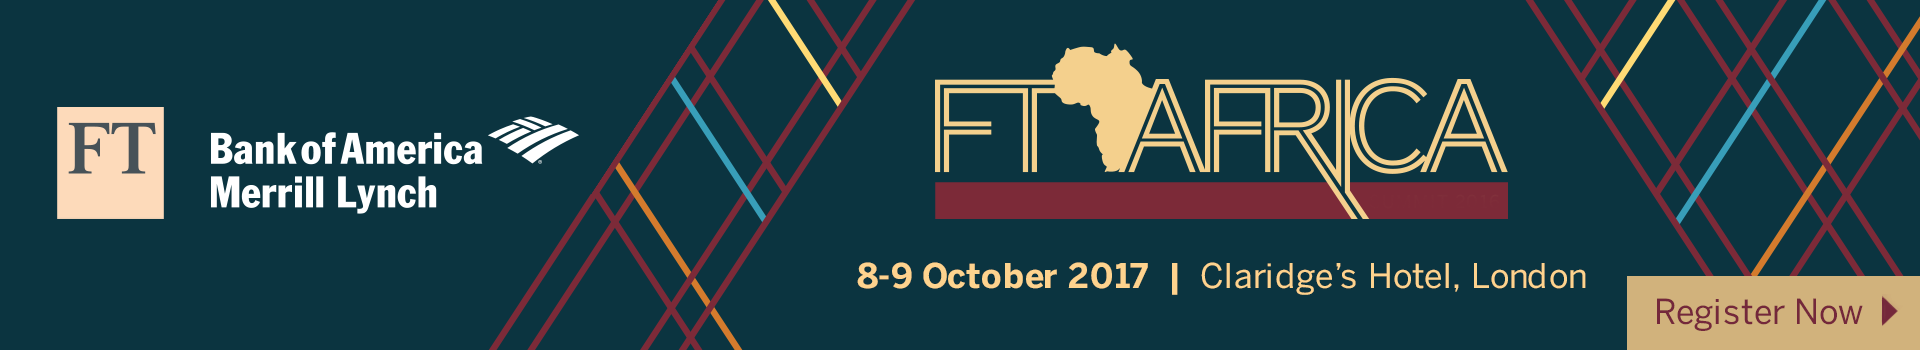 FT Africa Summit 2017 - London - 8 & 9 October